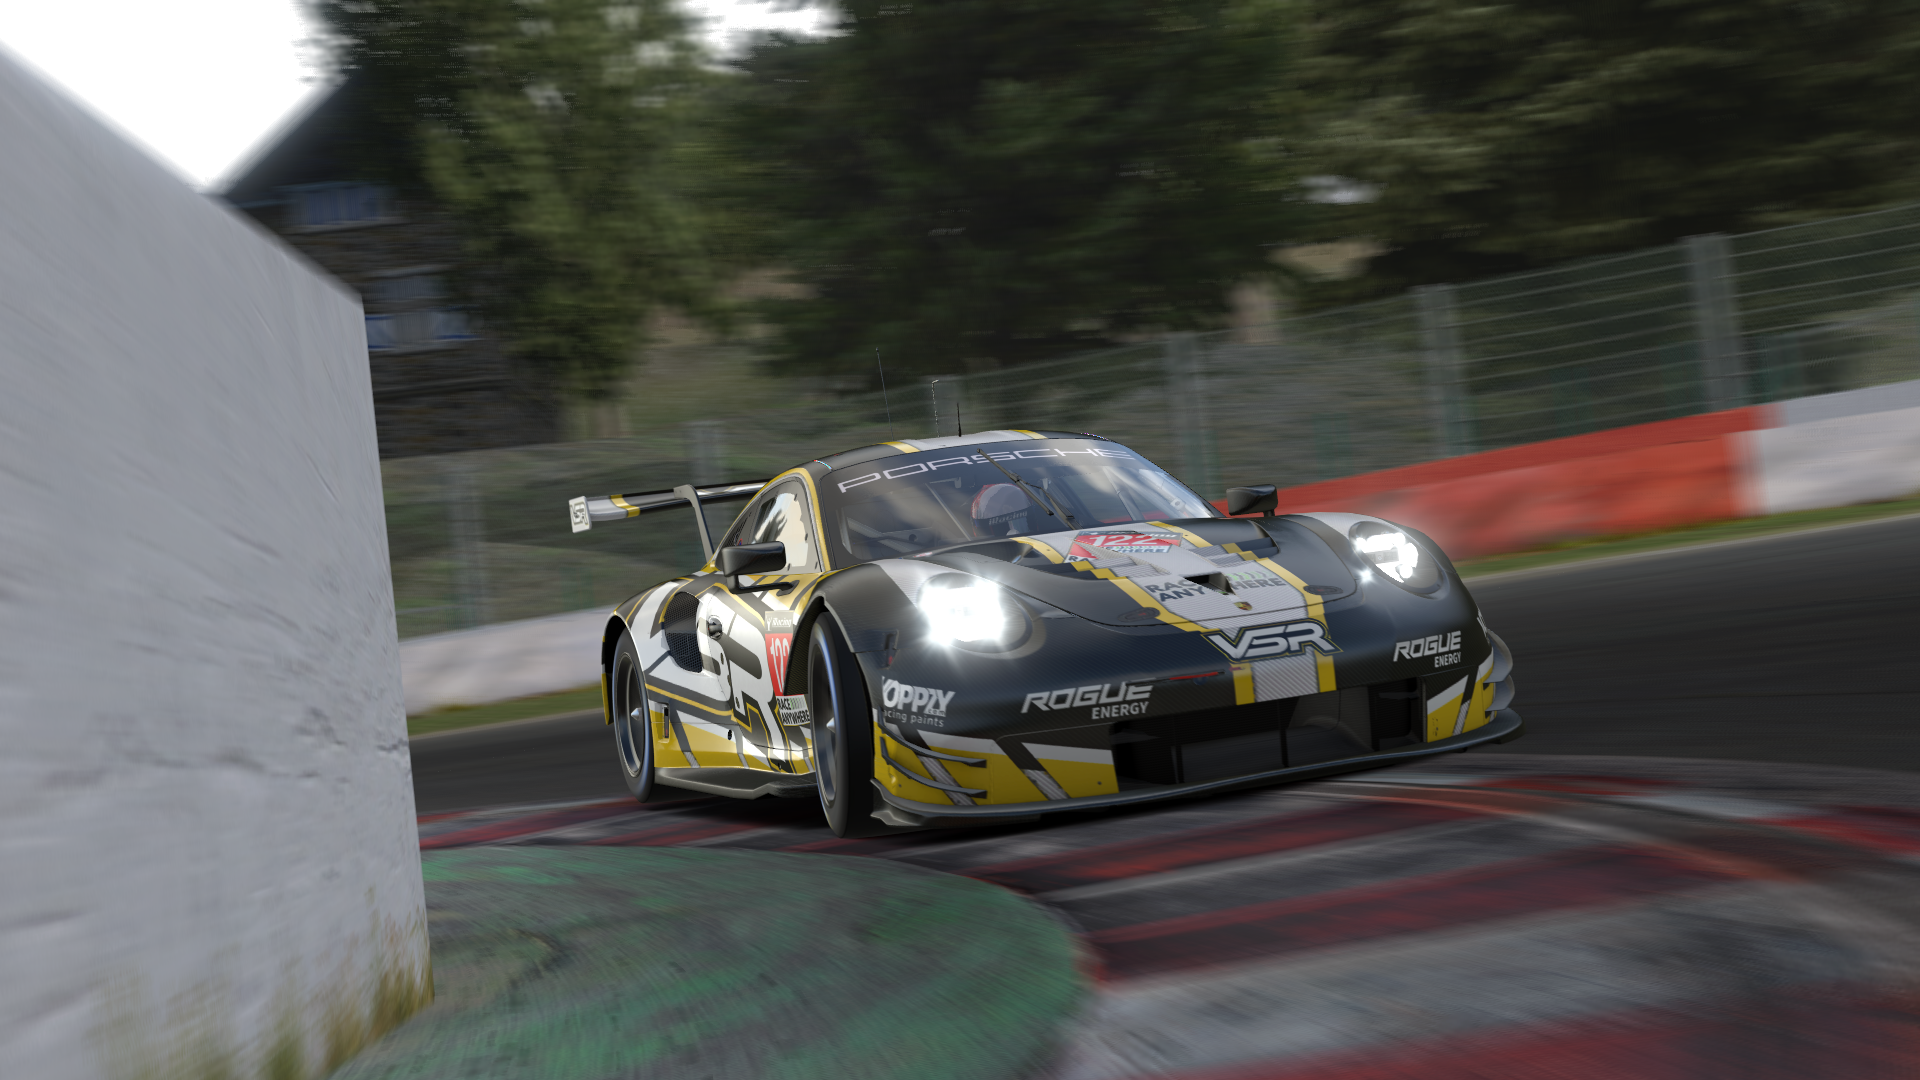 Vulcan Sim Racing Weekly: Edition #14 – Pushed For Luck